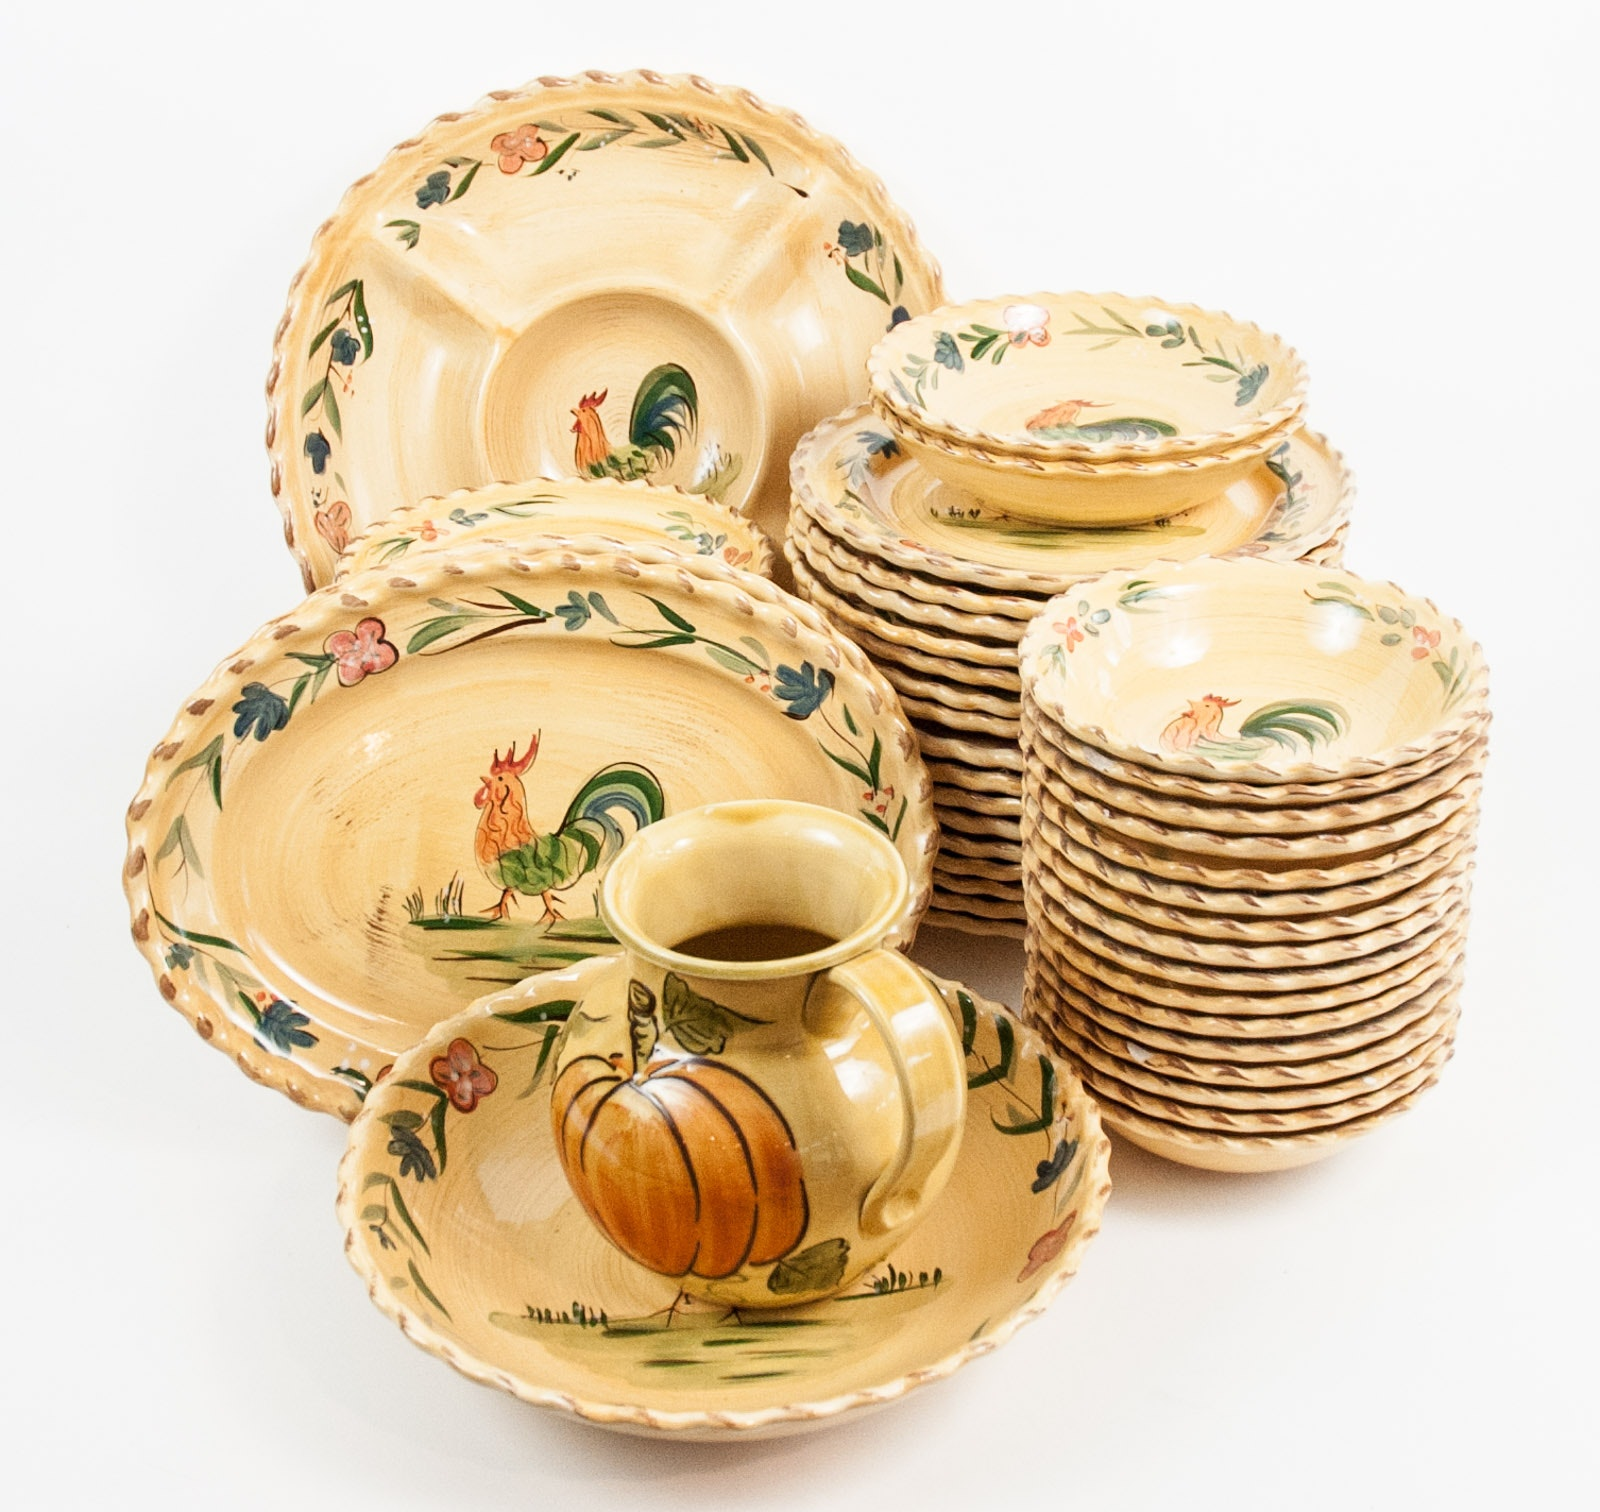 Rooster Themed Ceramic Tableware